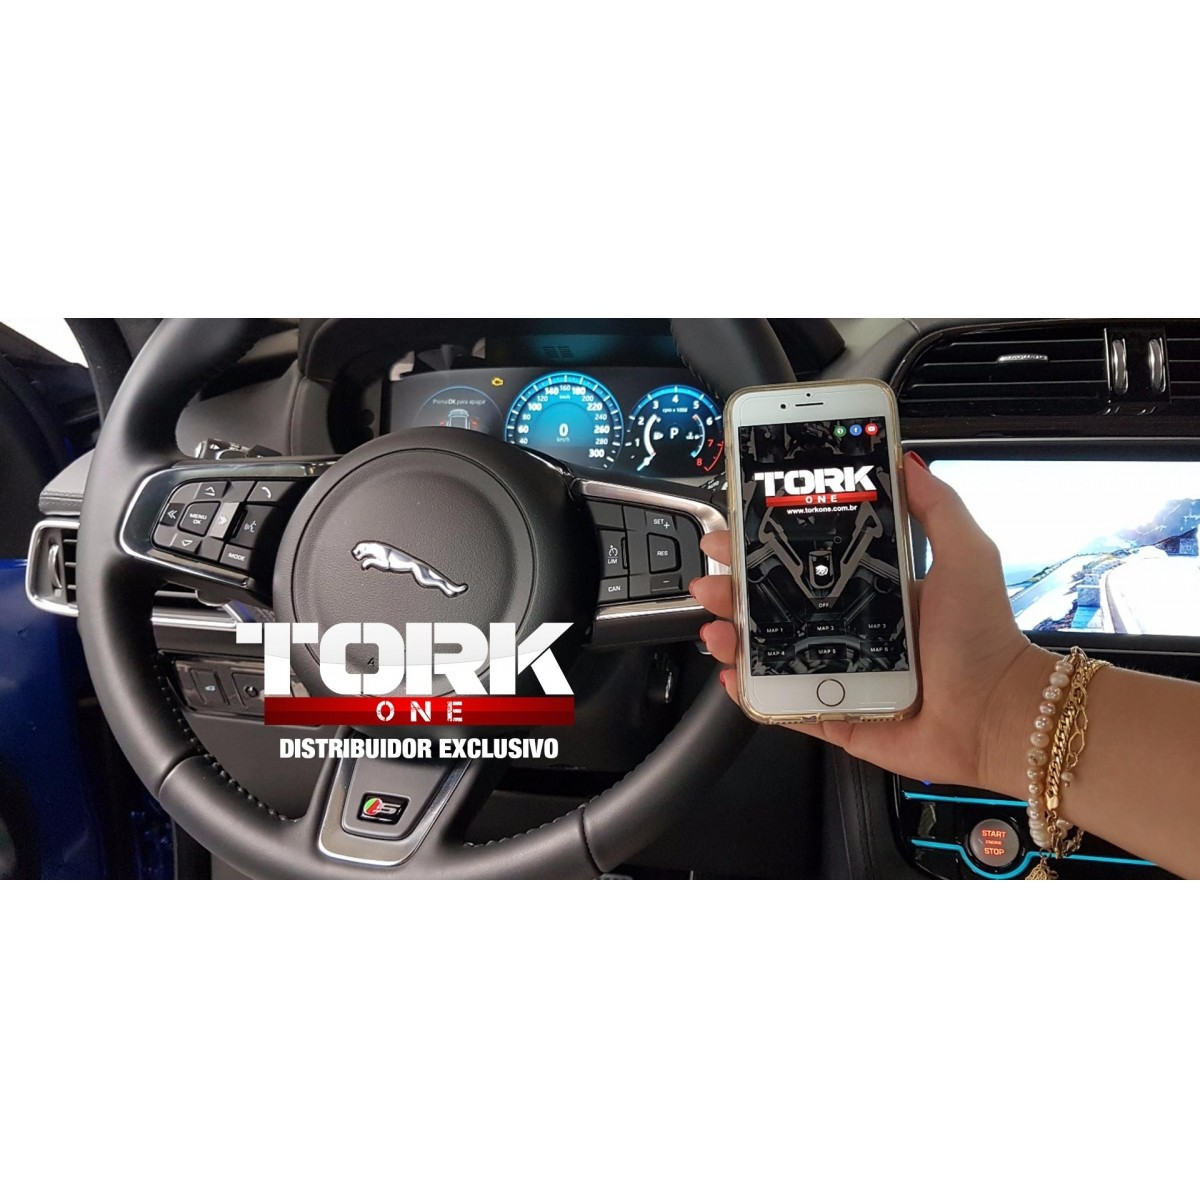 Gás Pedal - Renault - Tork One c/s Bluetooth